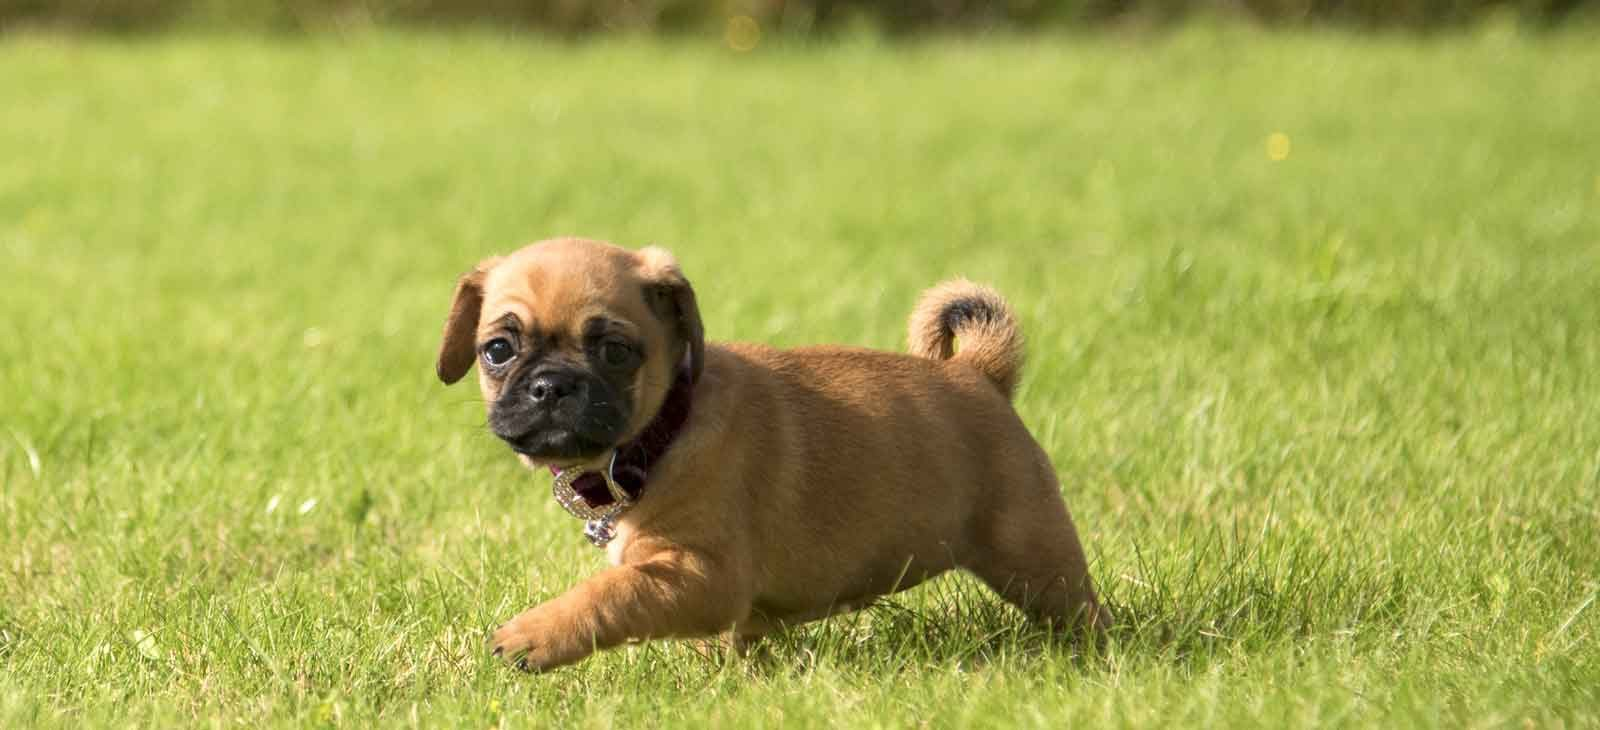 Building Your Dog S Confidence Up For Your New Puppy Through Puppy Training By Wolfkeeper University Medium